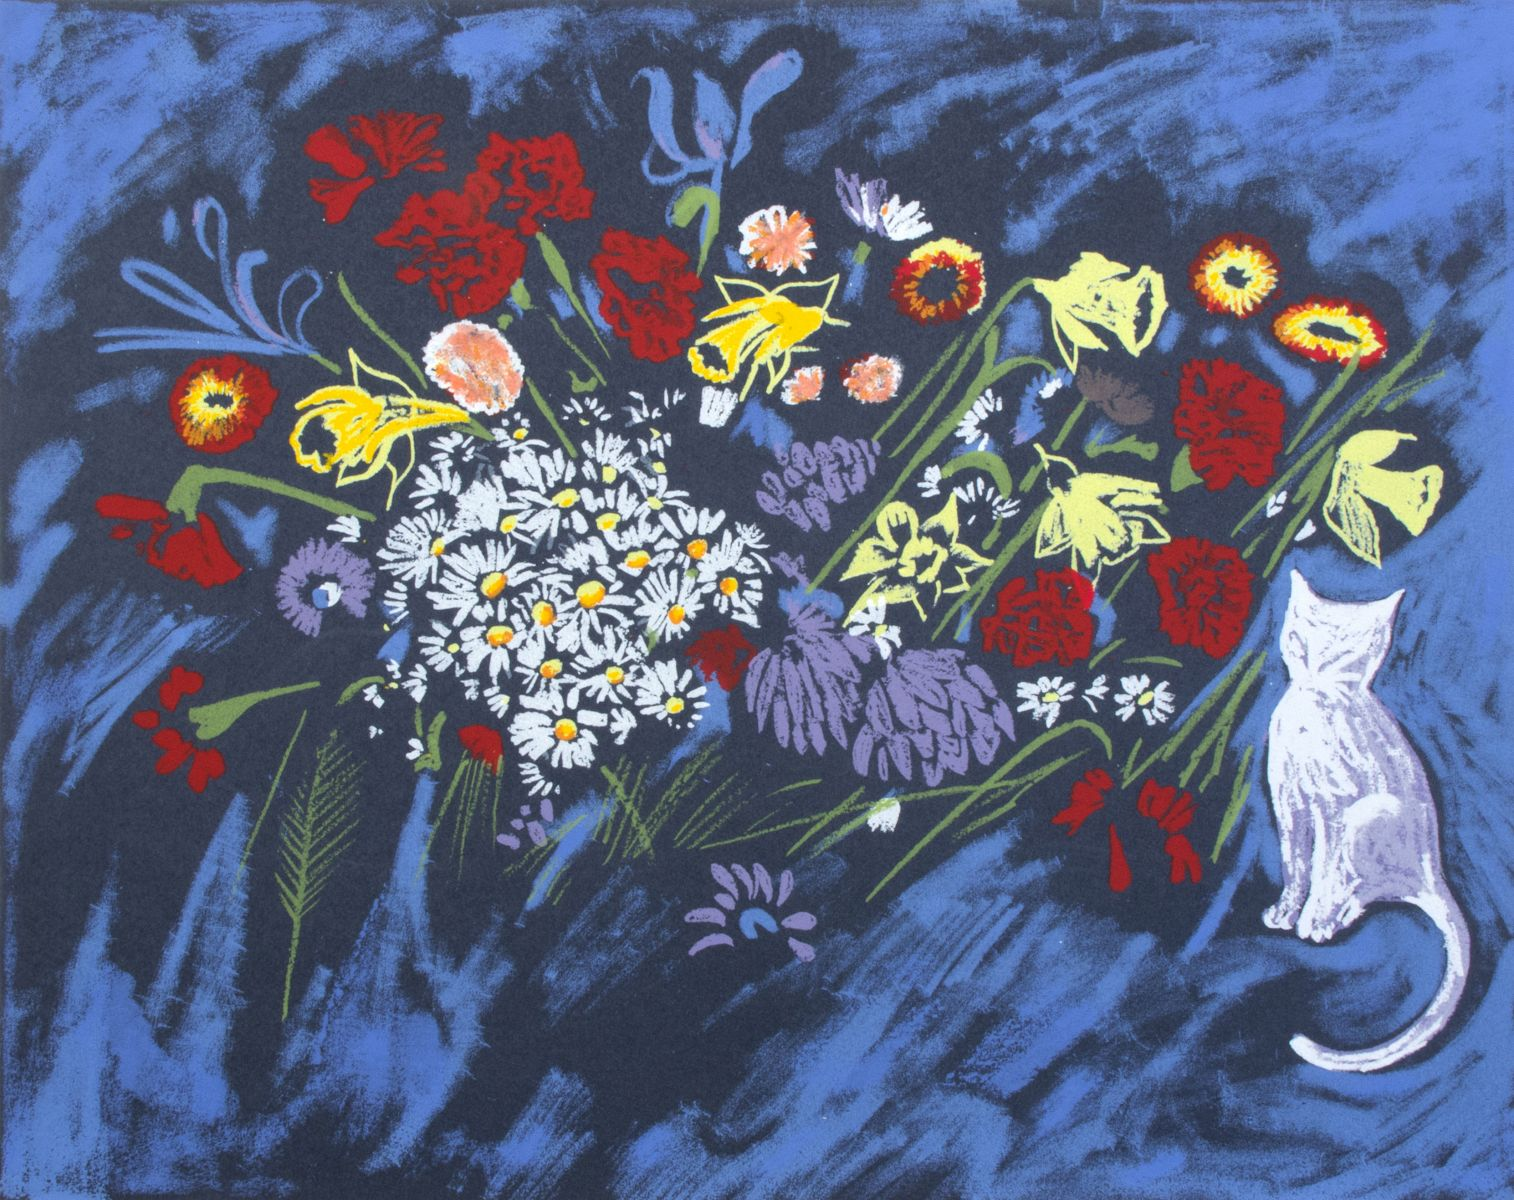 Arthouse Gallery Stockroom Charles Blackman Guest Artist Fifty flower